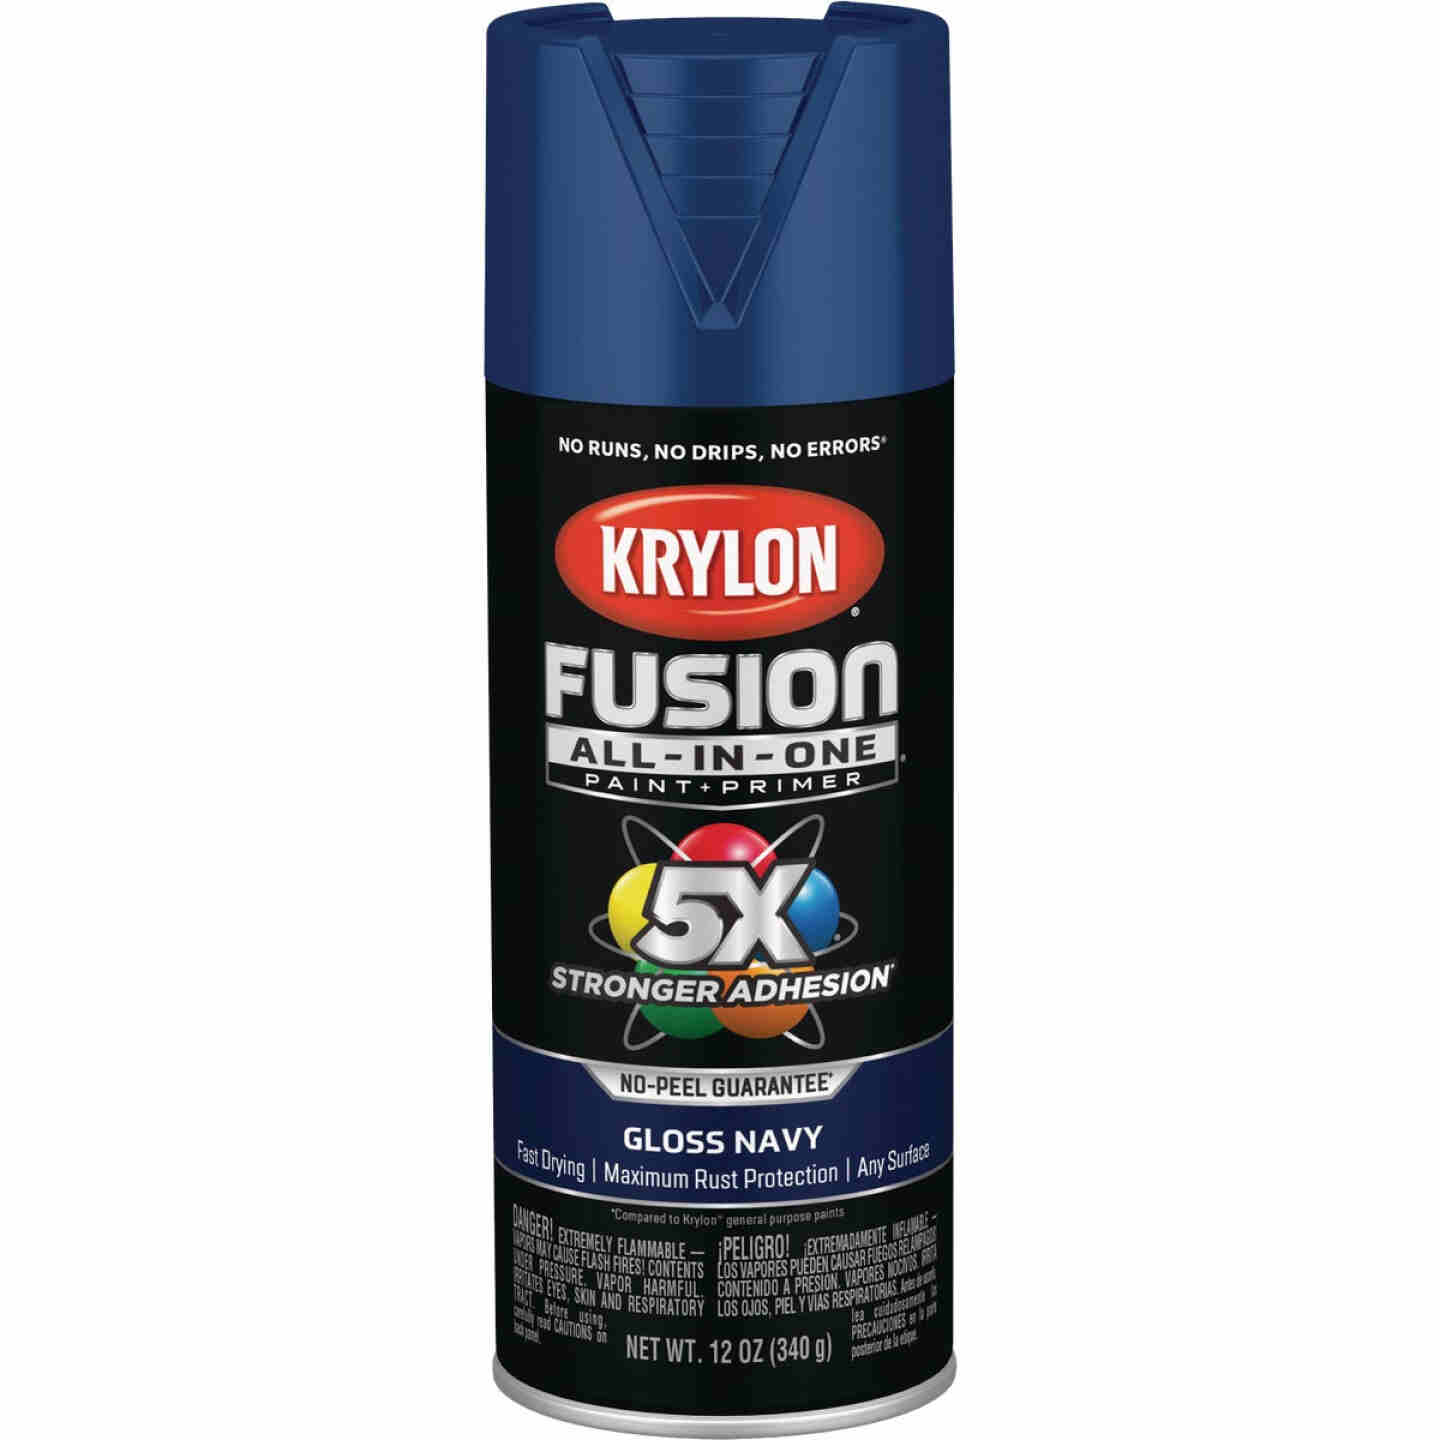 Krylon Fusion All-In-One Gloss Spray Paint & Primer, Navy Image 1